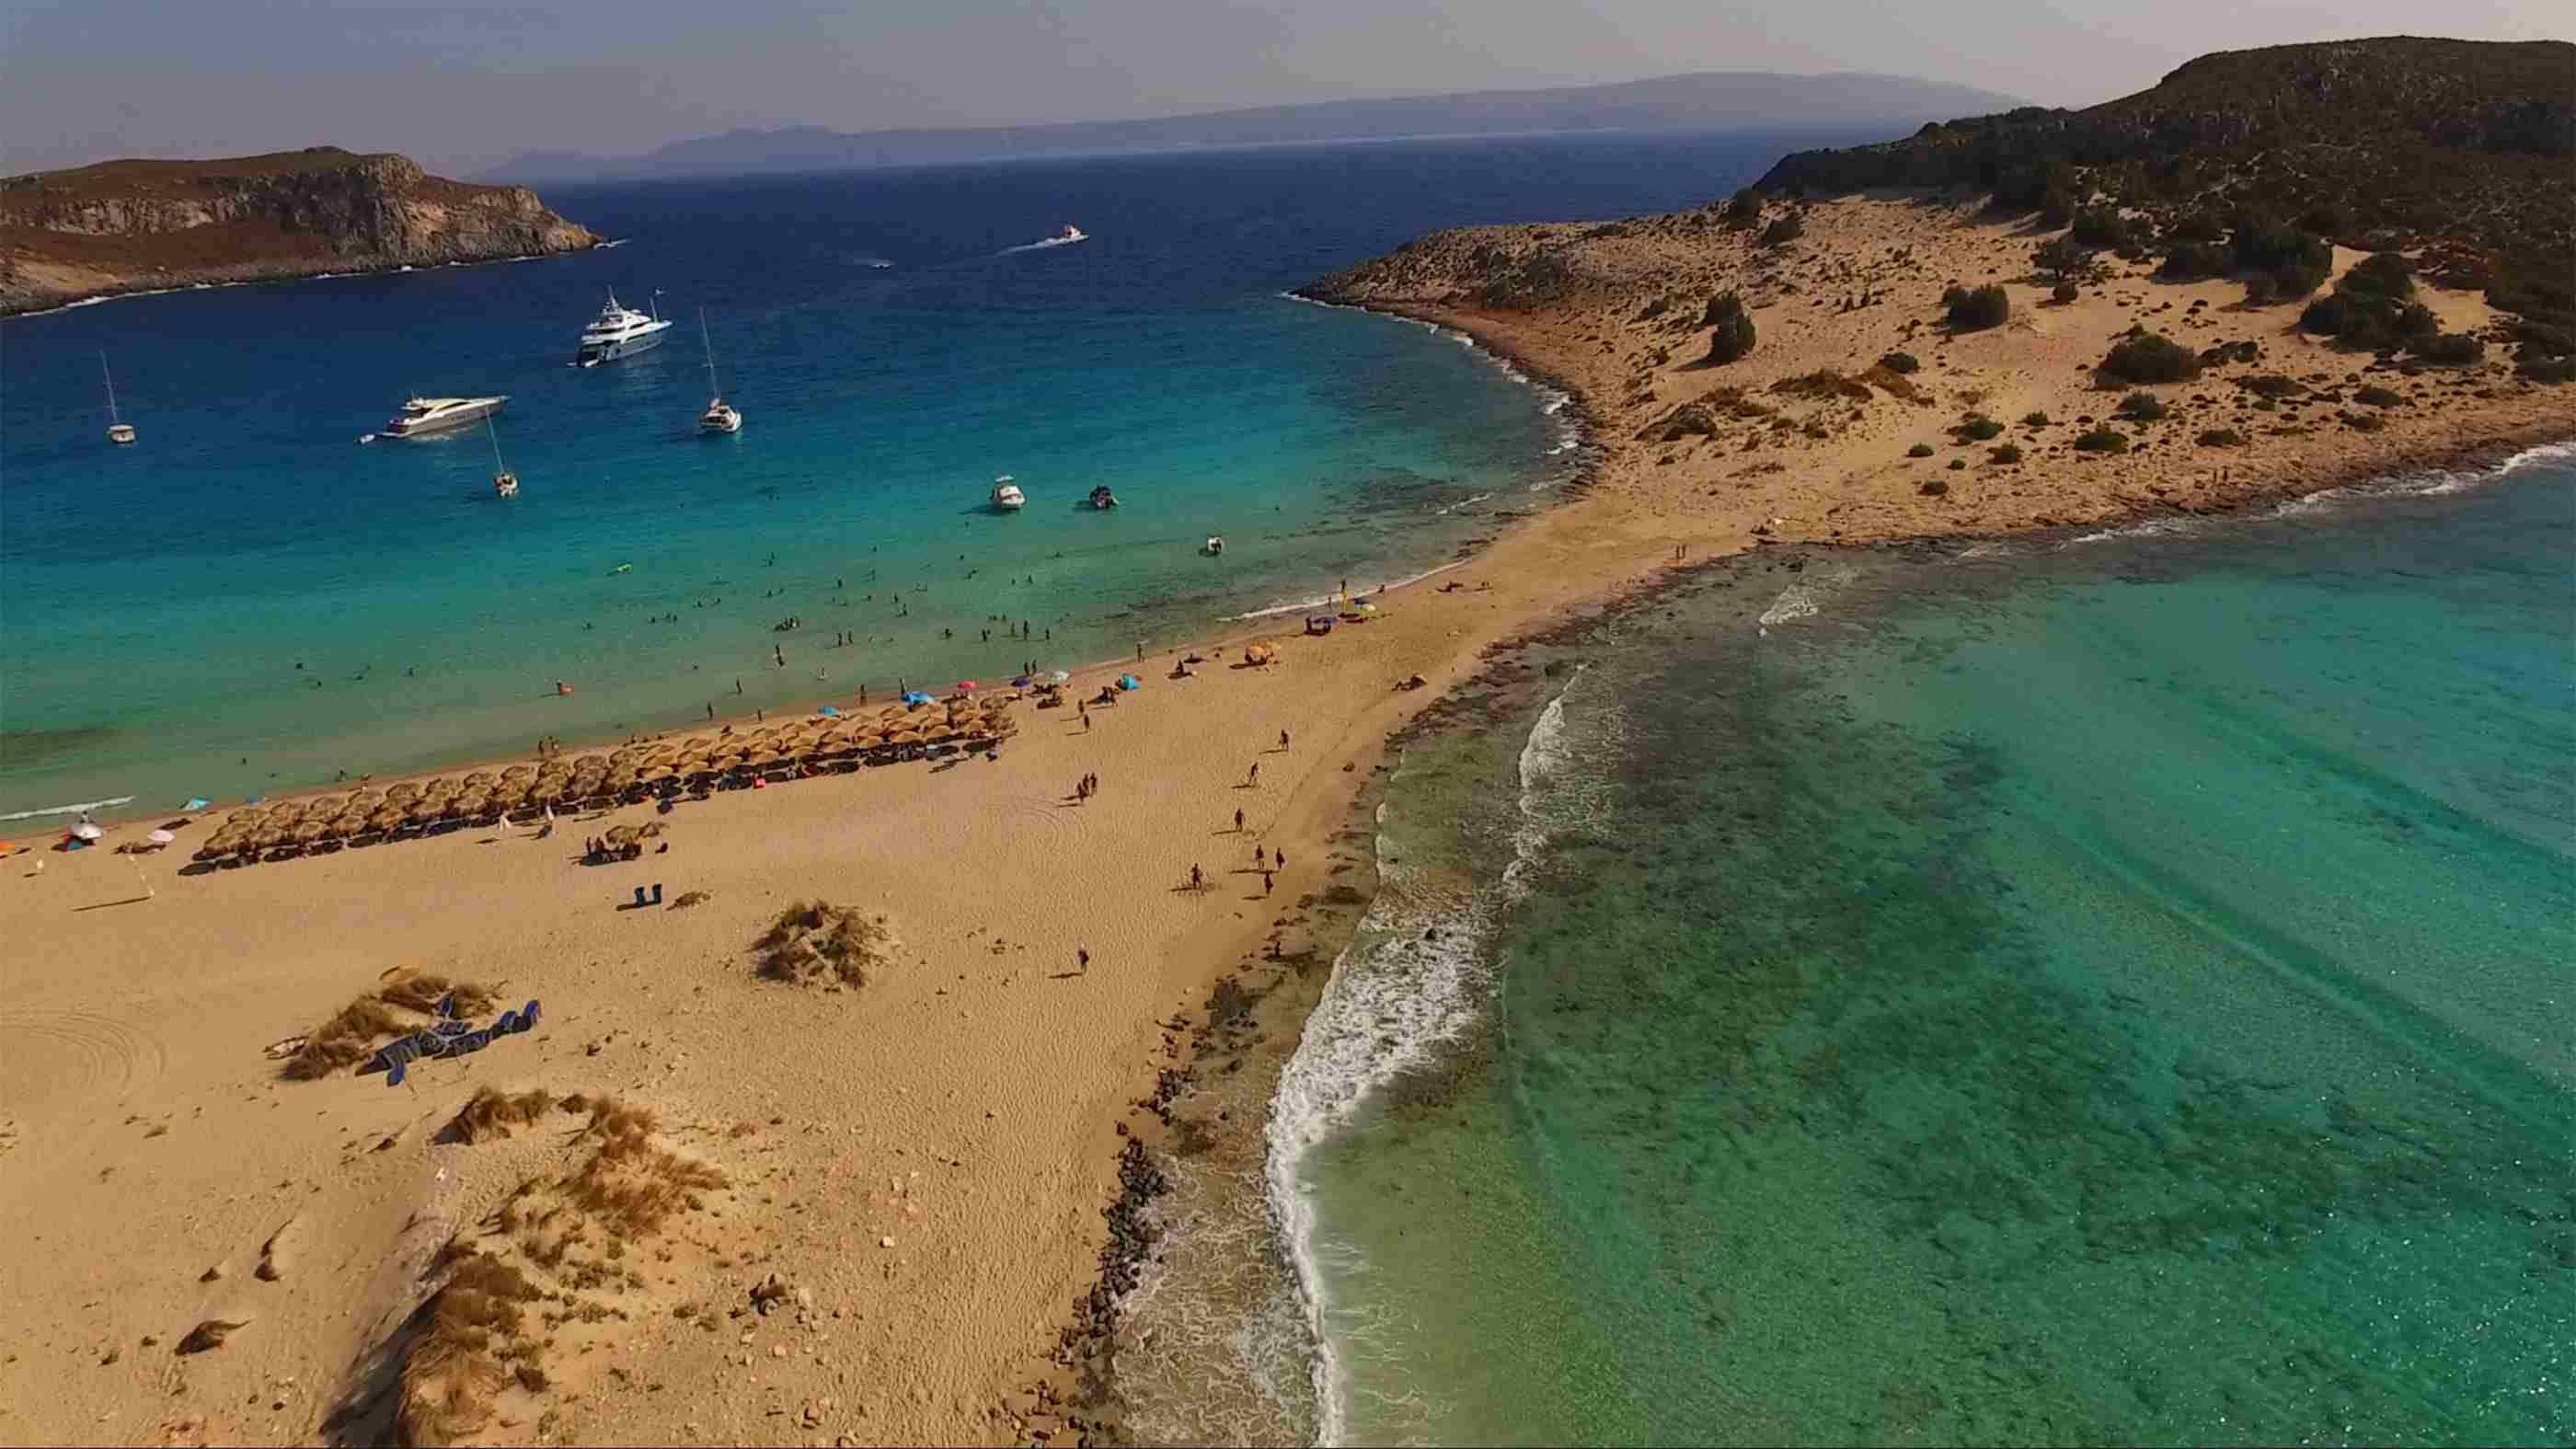 Aerial drone photo of iconic beach of Simos with turquoise waters, Elafonisos island, South Peloponnese, Greece